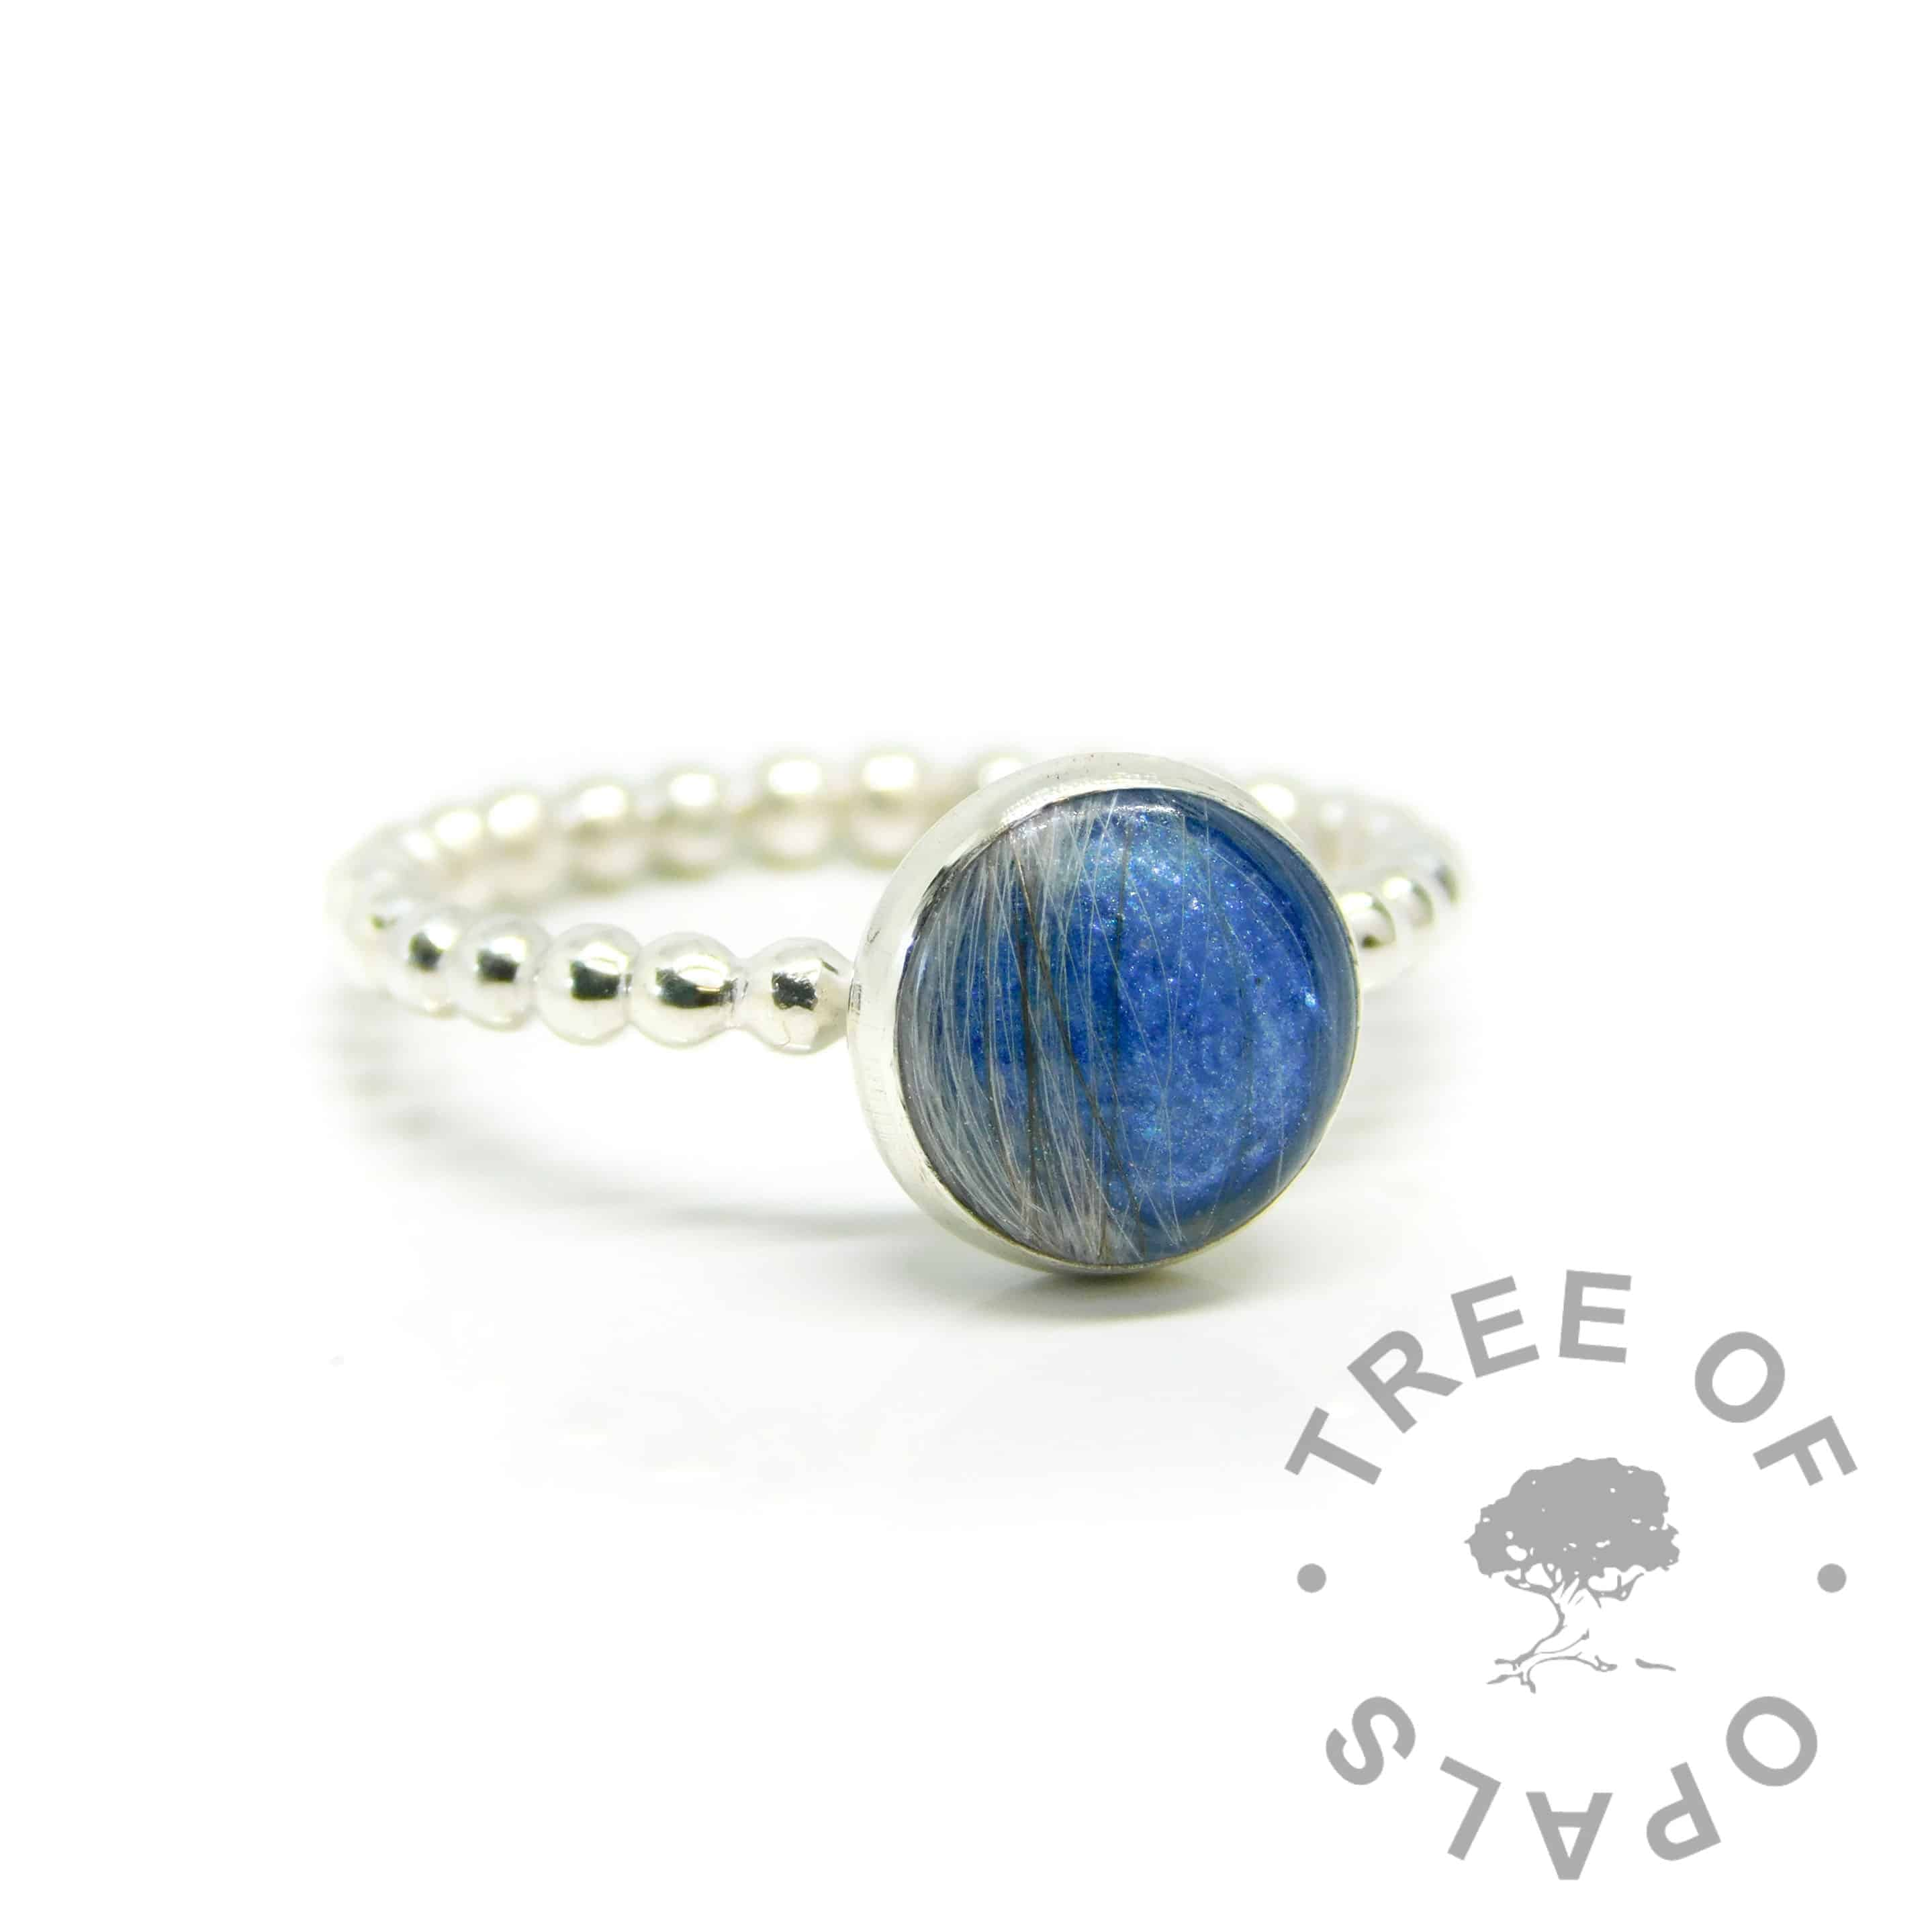 hair ring blue bubble, Aegean blue resin sparkle mix and bubble wire band. 8mm round setting mystery piece possibility (this ring was filmed as a tutorial)